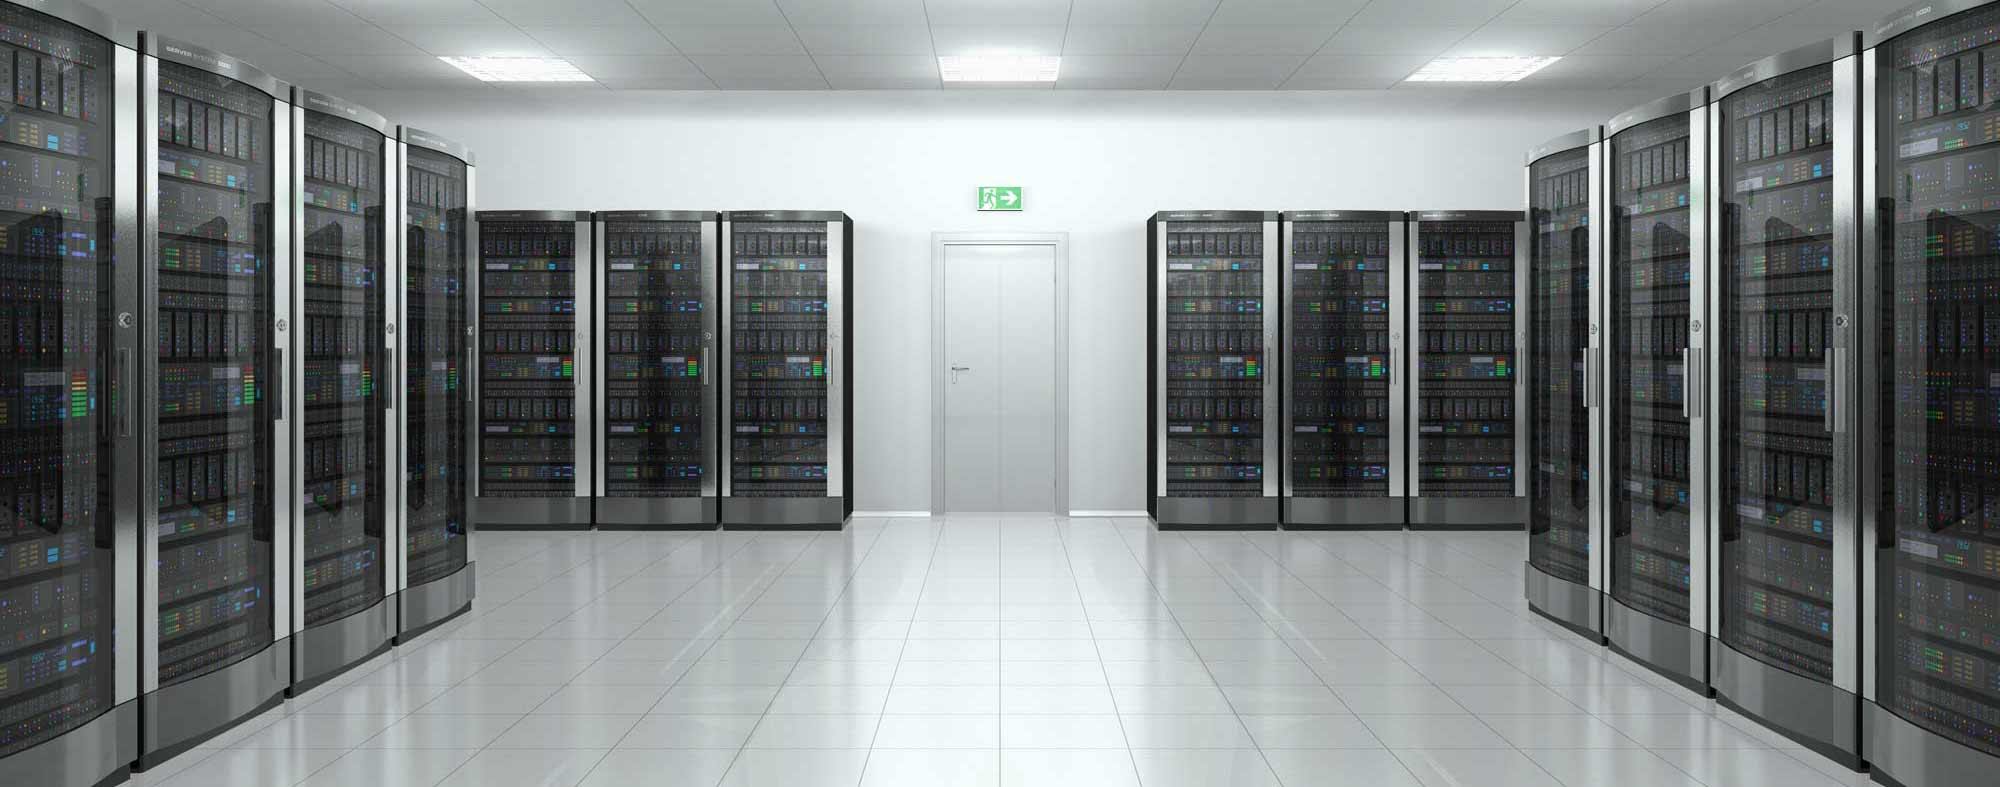 Web Hosting Provider For Your Business Needs